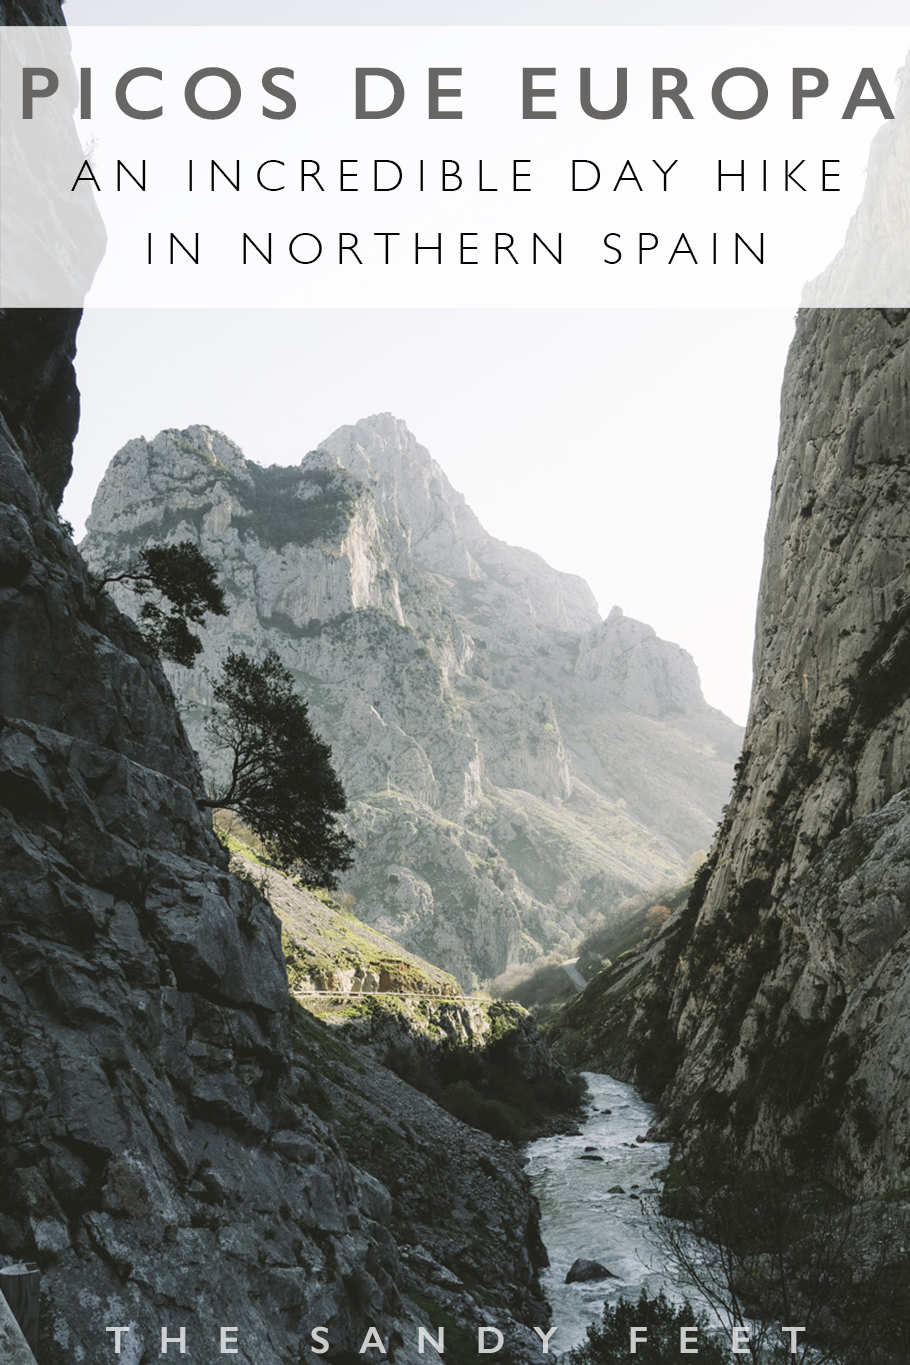 Hiking The Picos de Europa: An Incredible Day Hike In Northern Spain From Poncebos To Bulnes And Sotres